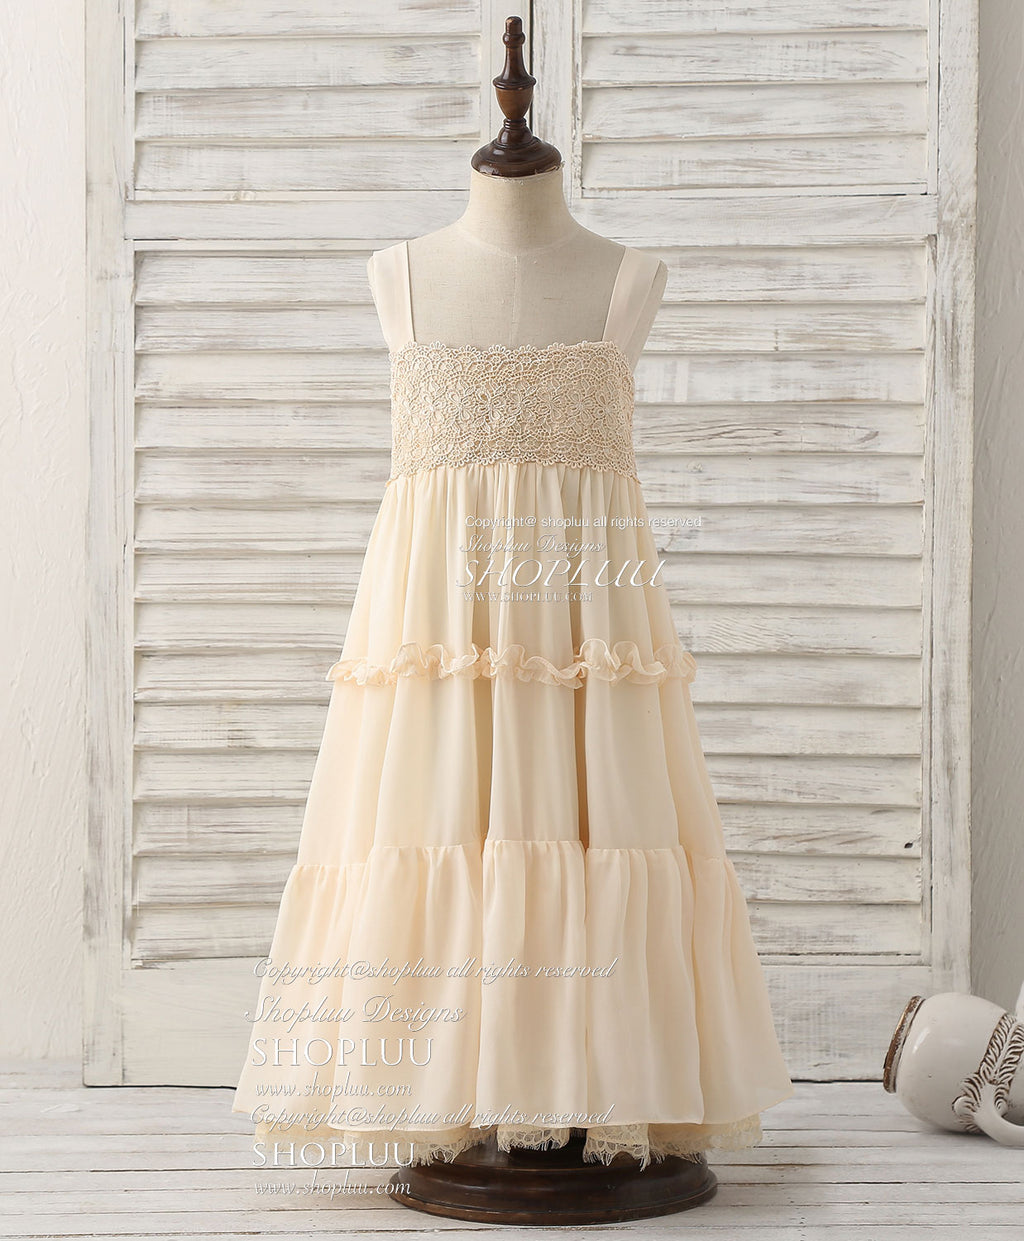 Cue champagne chiffon lace flower girl dress